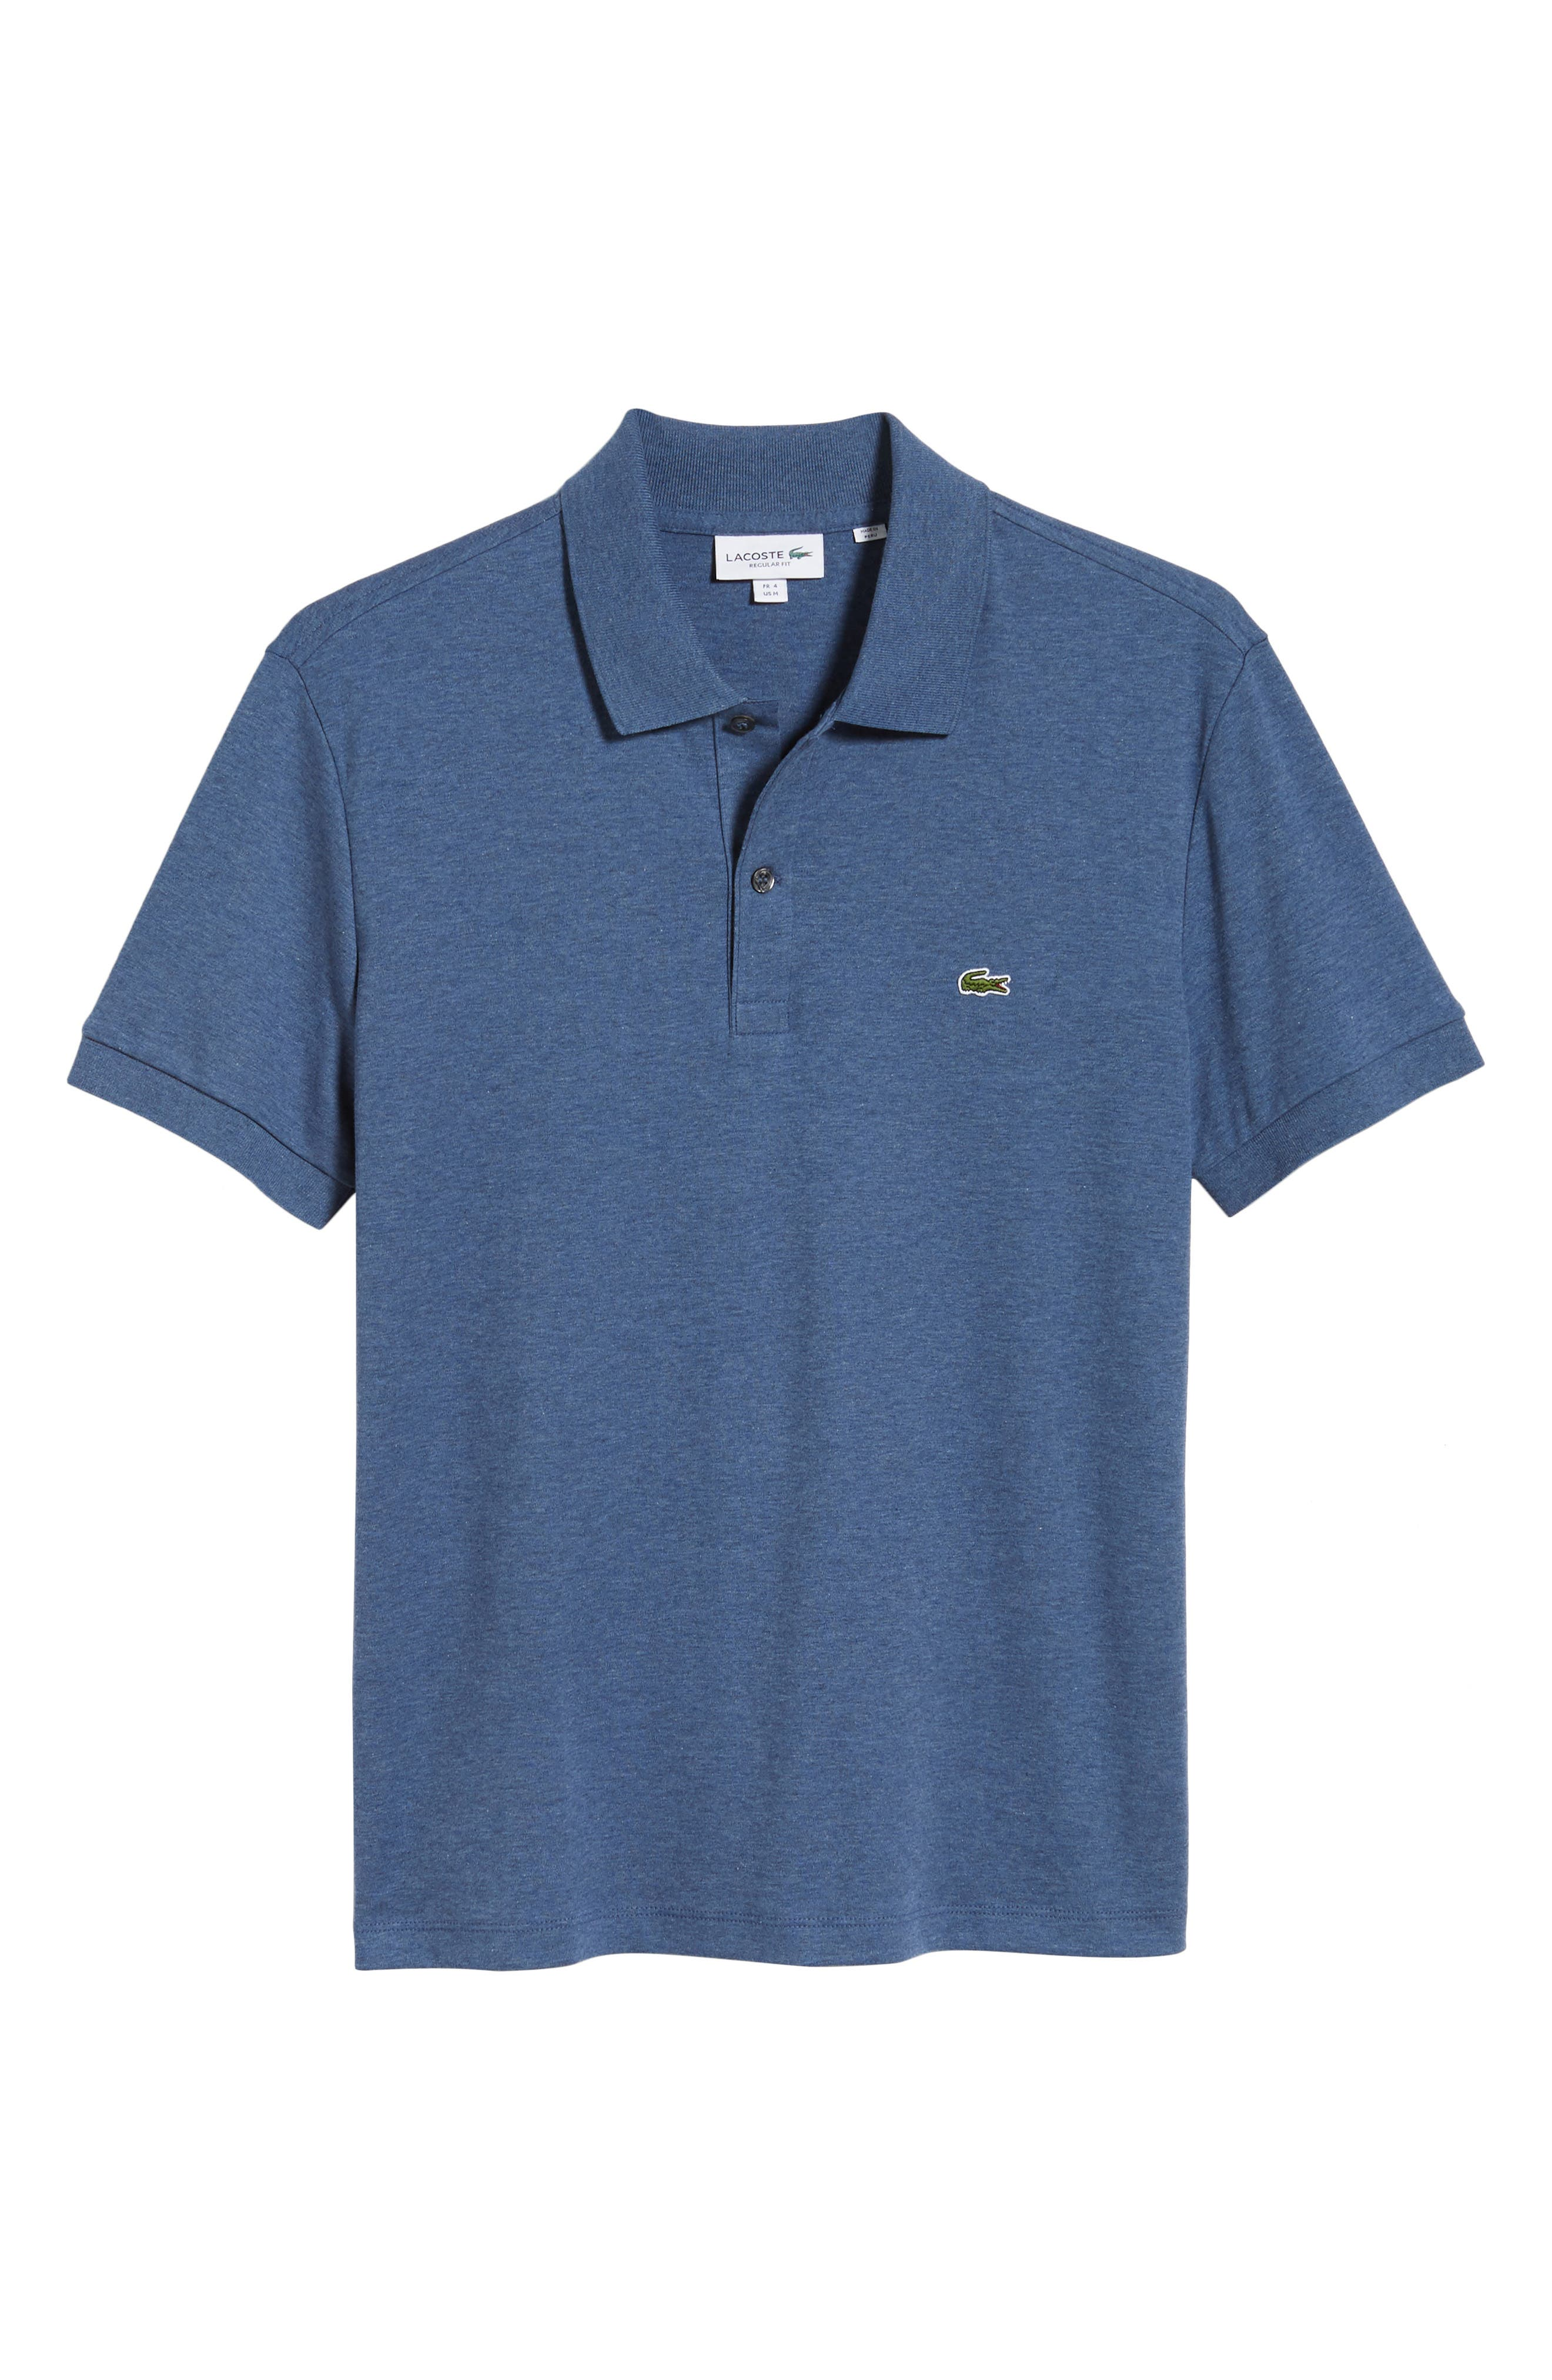 LACOSTE, Jersey Interlock Regular Fit Polo, Alternate thumbnail 6, color, CRUISE CHINE